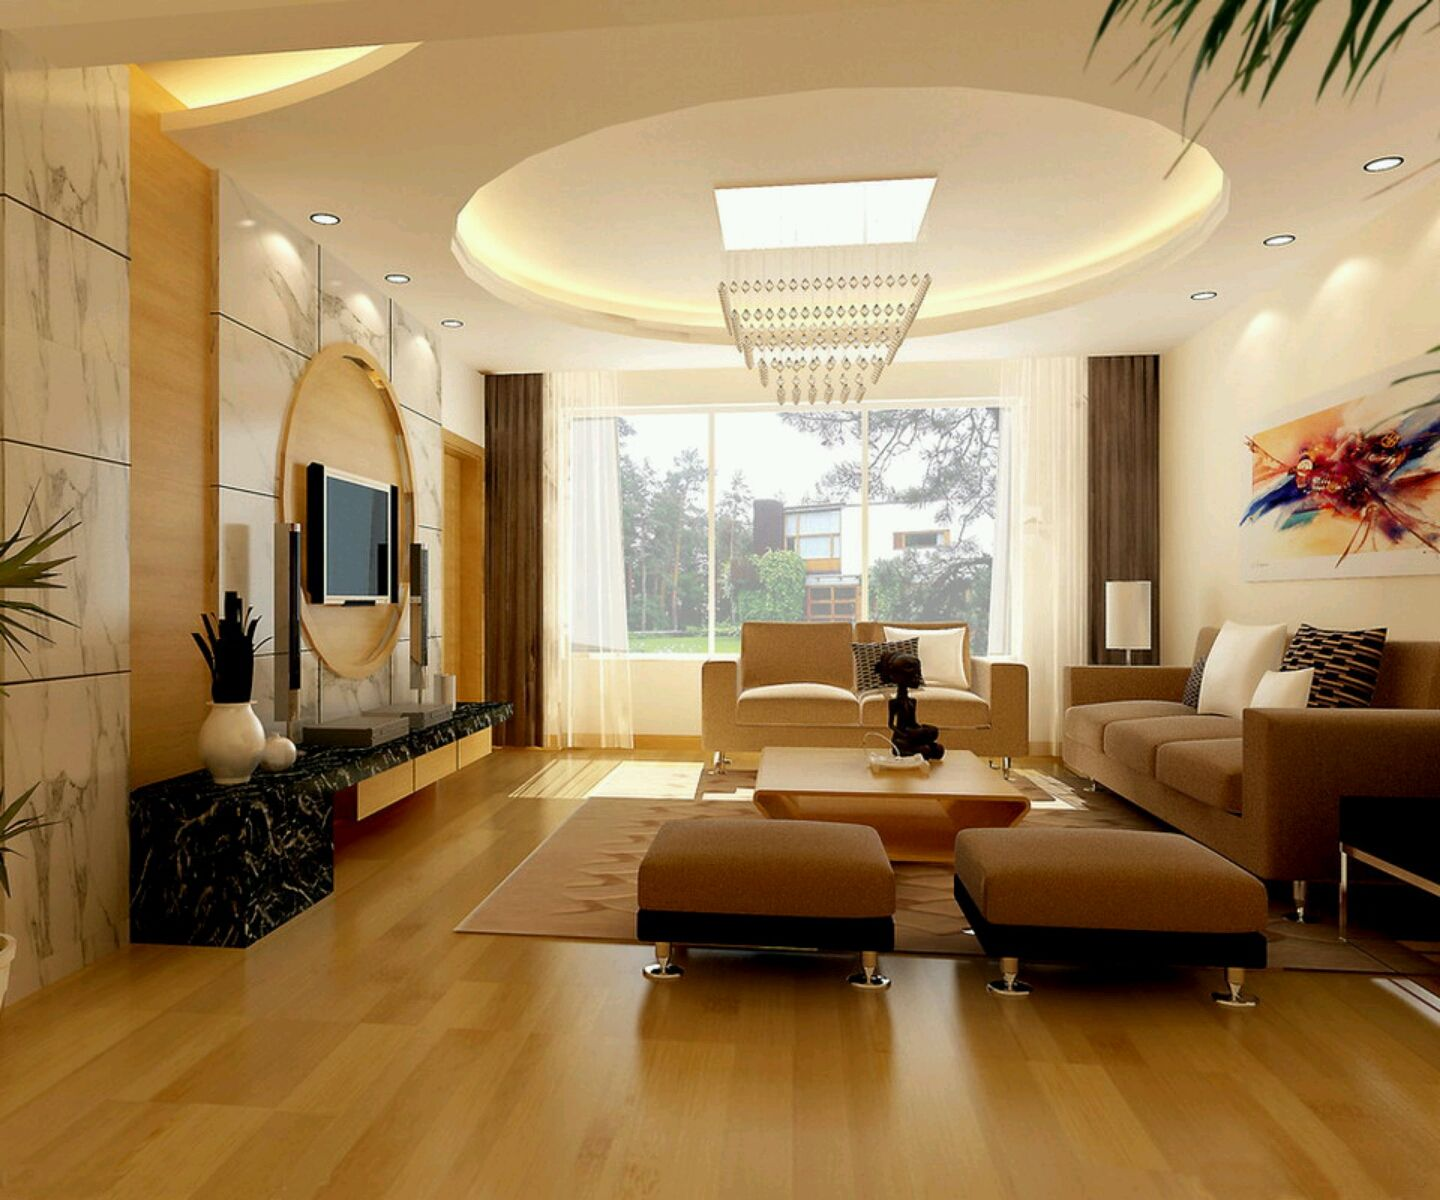 New Design Of Living Room Ceiling Designs For Your Living Room Ceiling Design Led Light